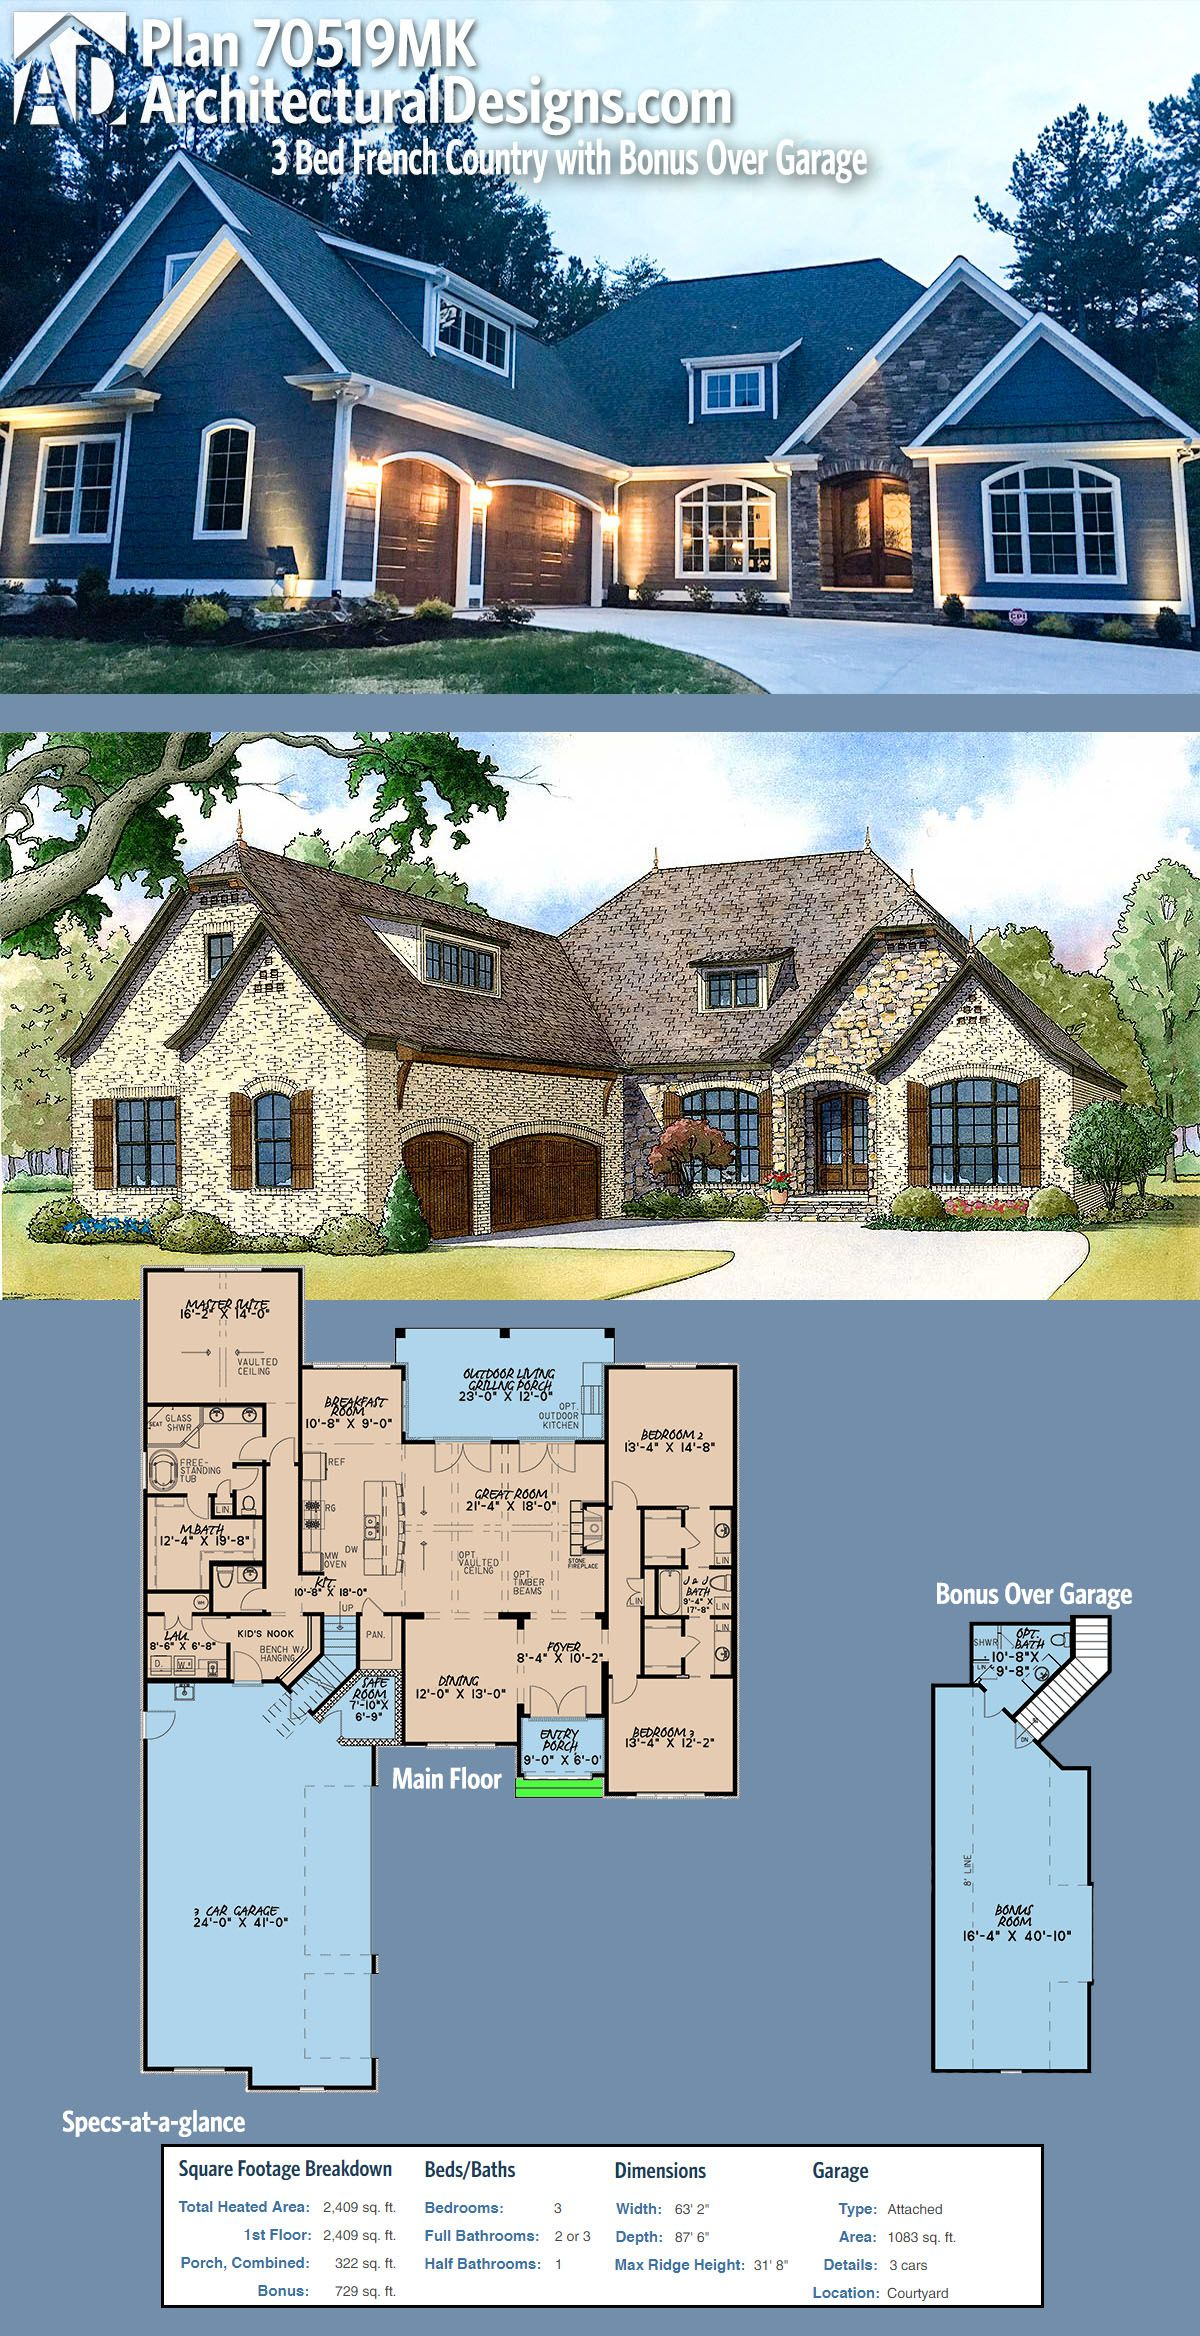 Architectural Designs House Plan 70519MK gives you